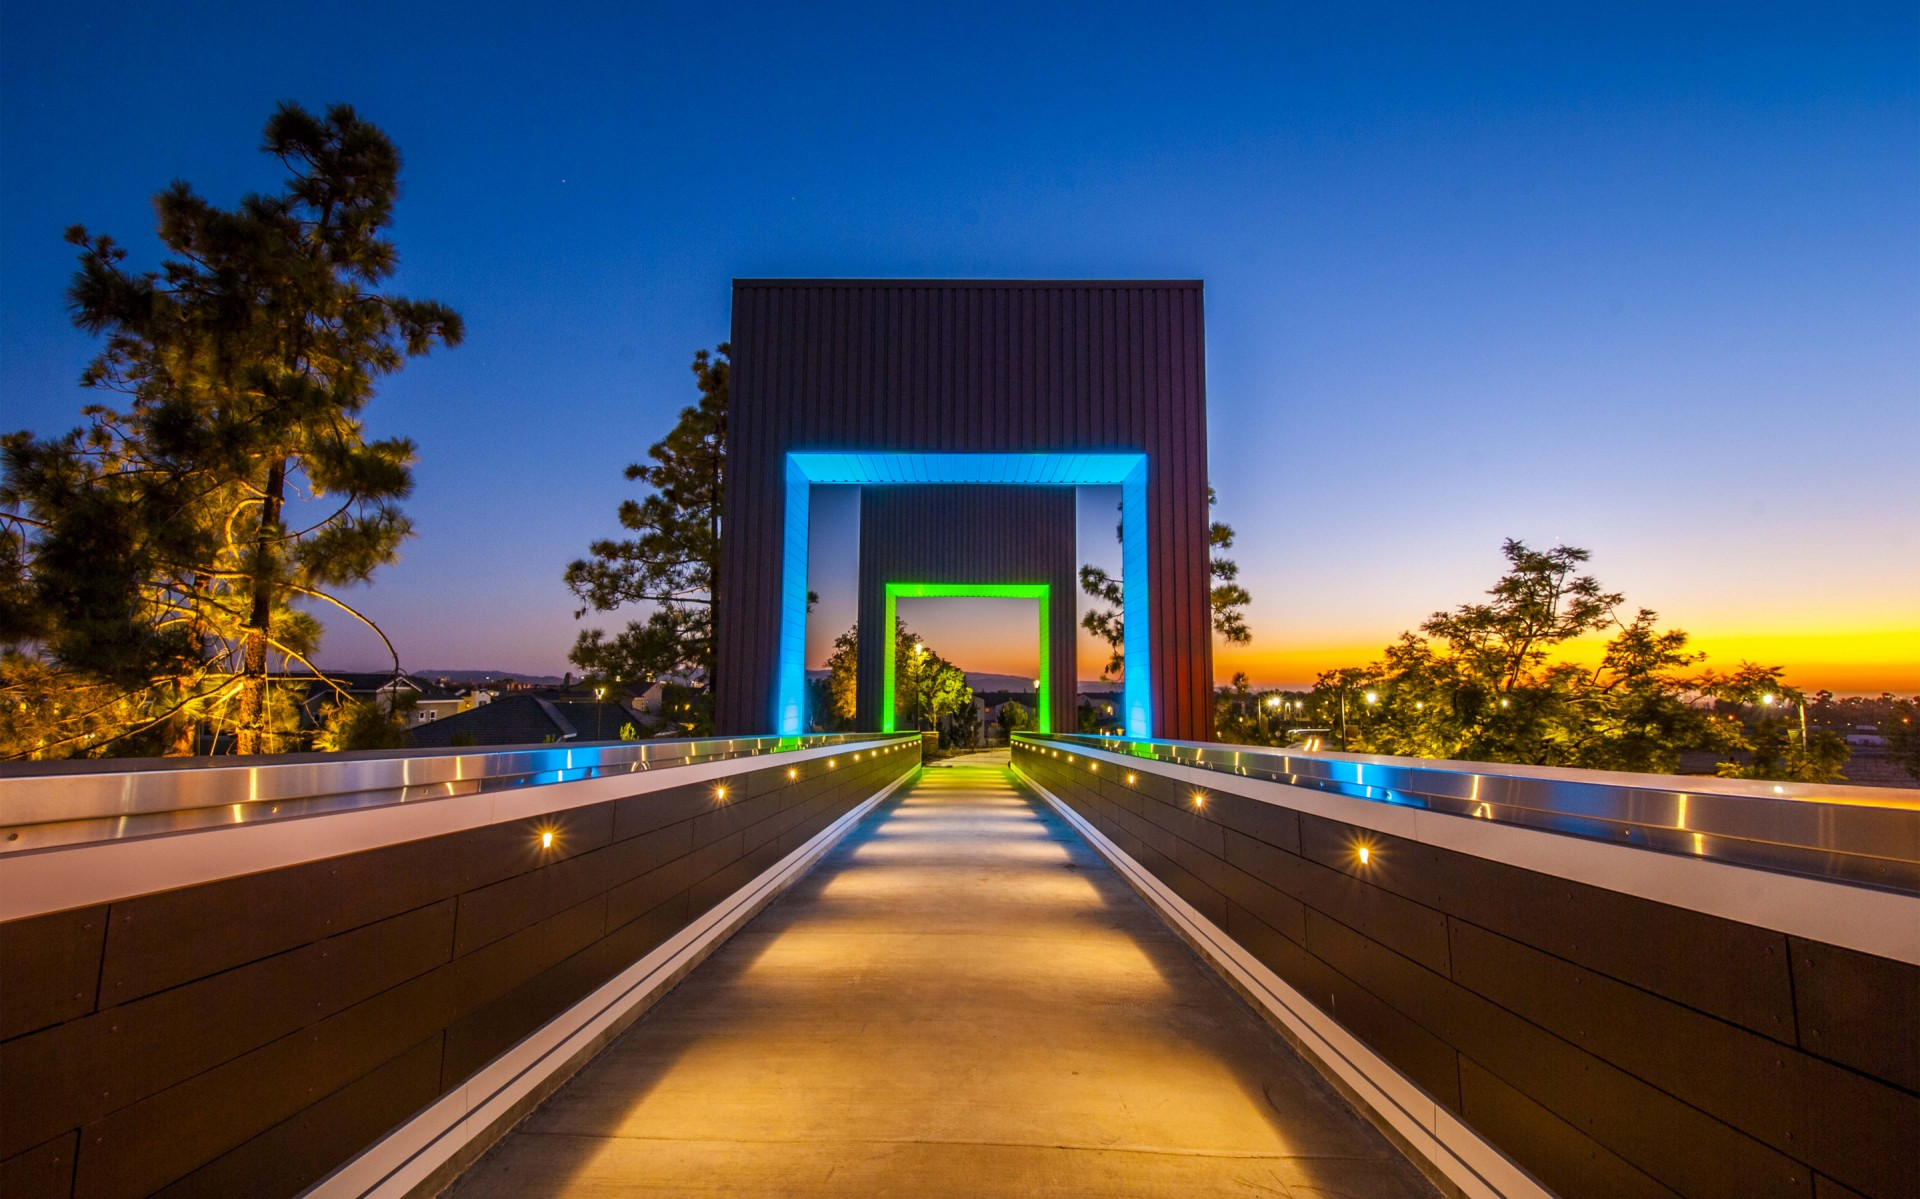 The lighting design strategically placed Lumenpulse Lumenfacade luminaires to illuminate the grand vertical gateways. – Brad Nelson